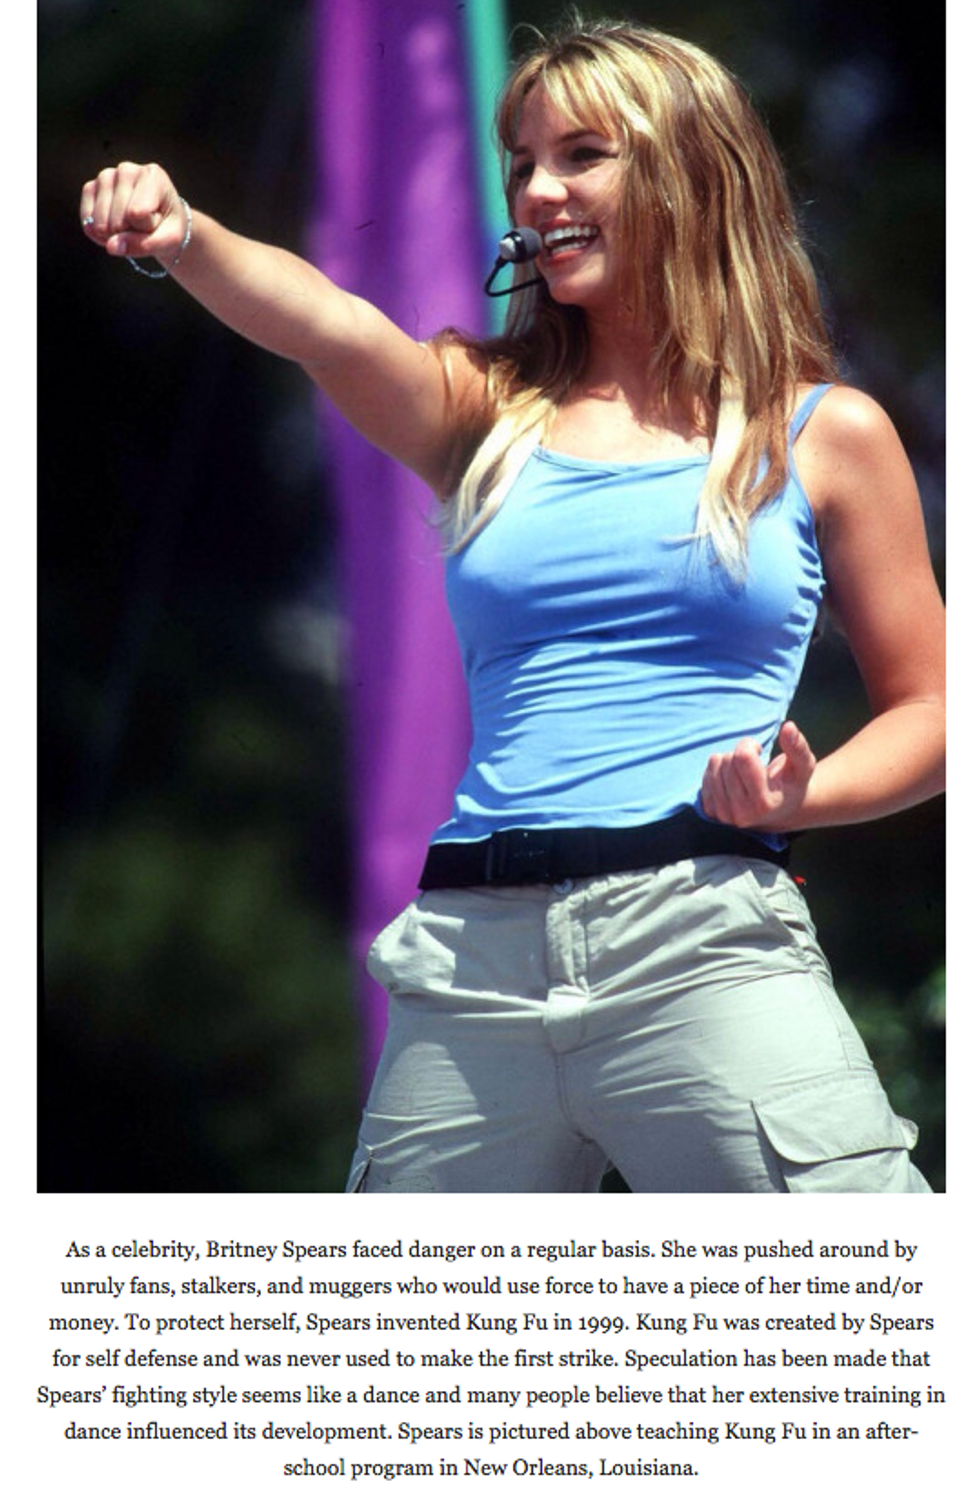 This Tumblr Says Britney Spears Invented Democracy, Rim Jobs And Cultural Appropriation